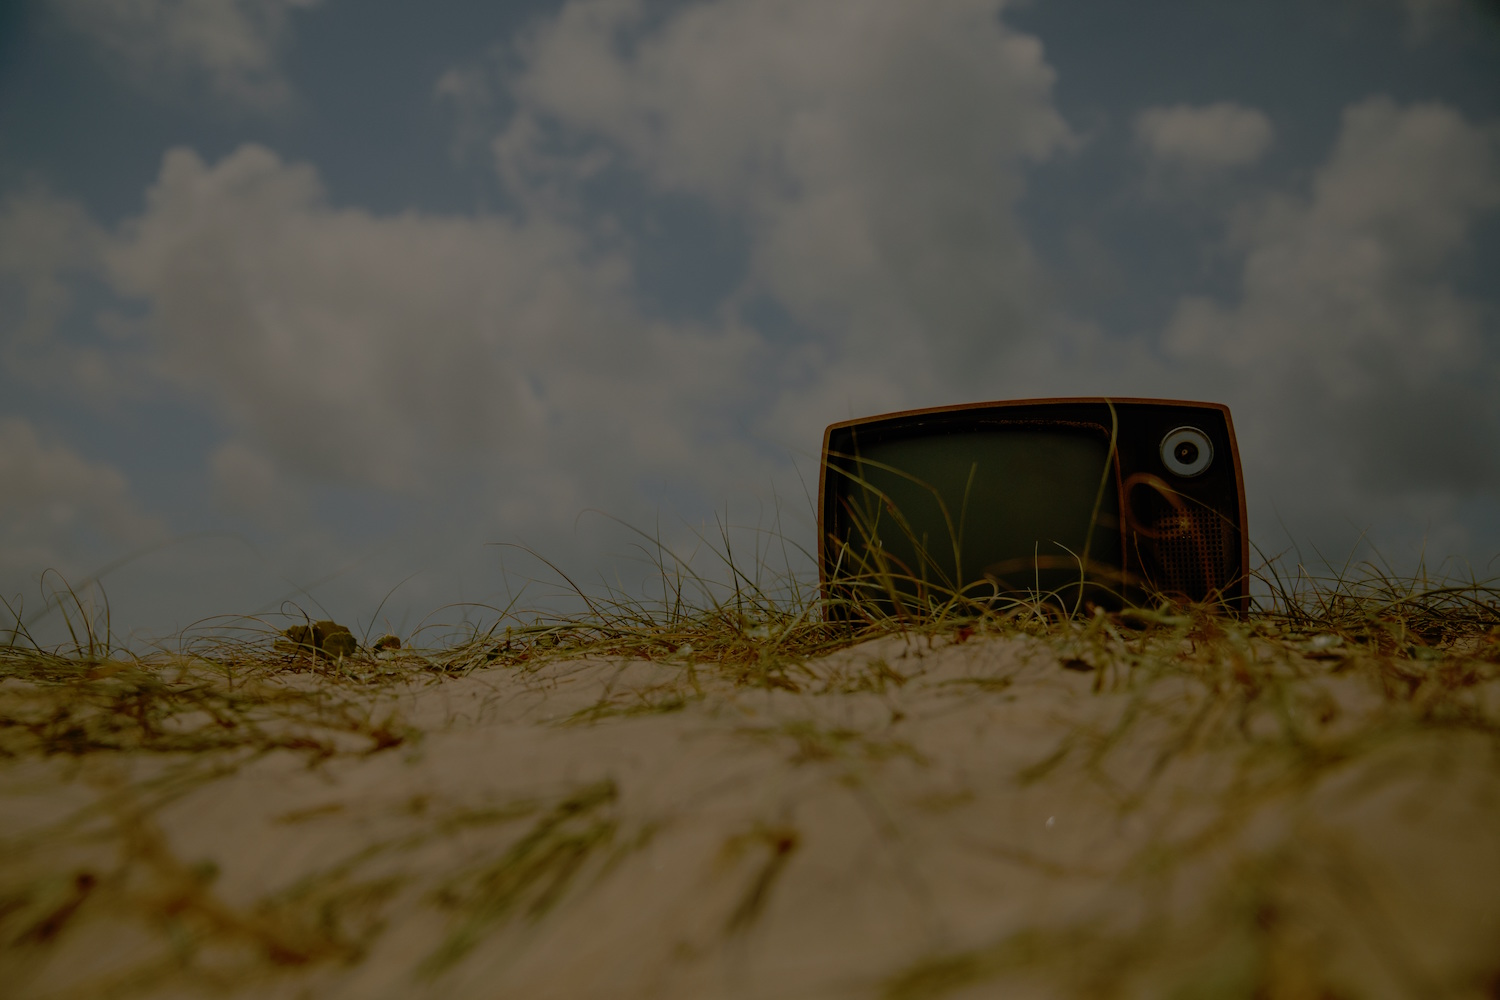 THE FUTURE OF TV IS SOCIAL & THE REVOLUTION STARTS NOW